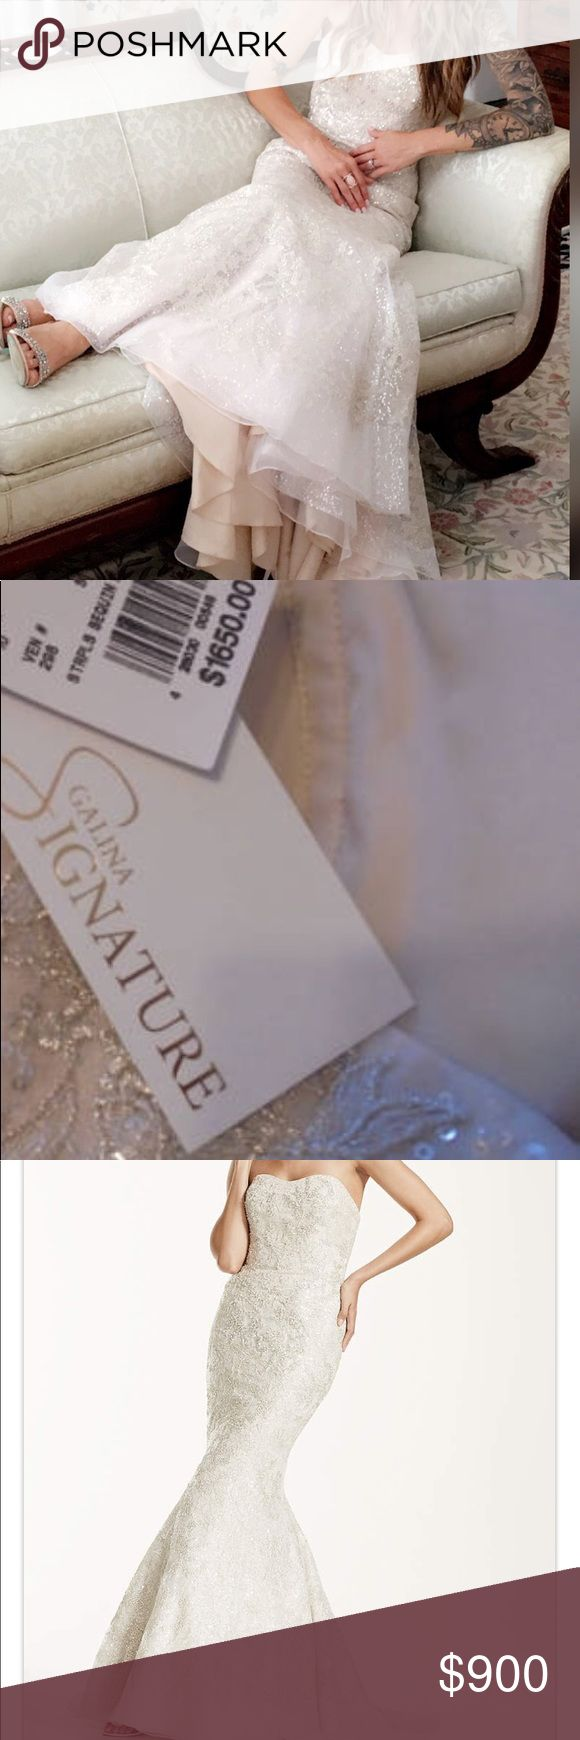 Galina Signature Wedding Gown This dress is breathtaking in person. Champagne color with a blush undertone. Size 2 altered to a 0. Has bustle. Dresses Wedding